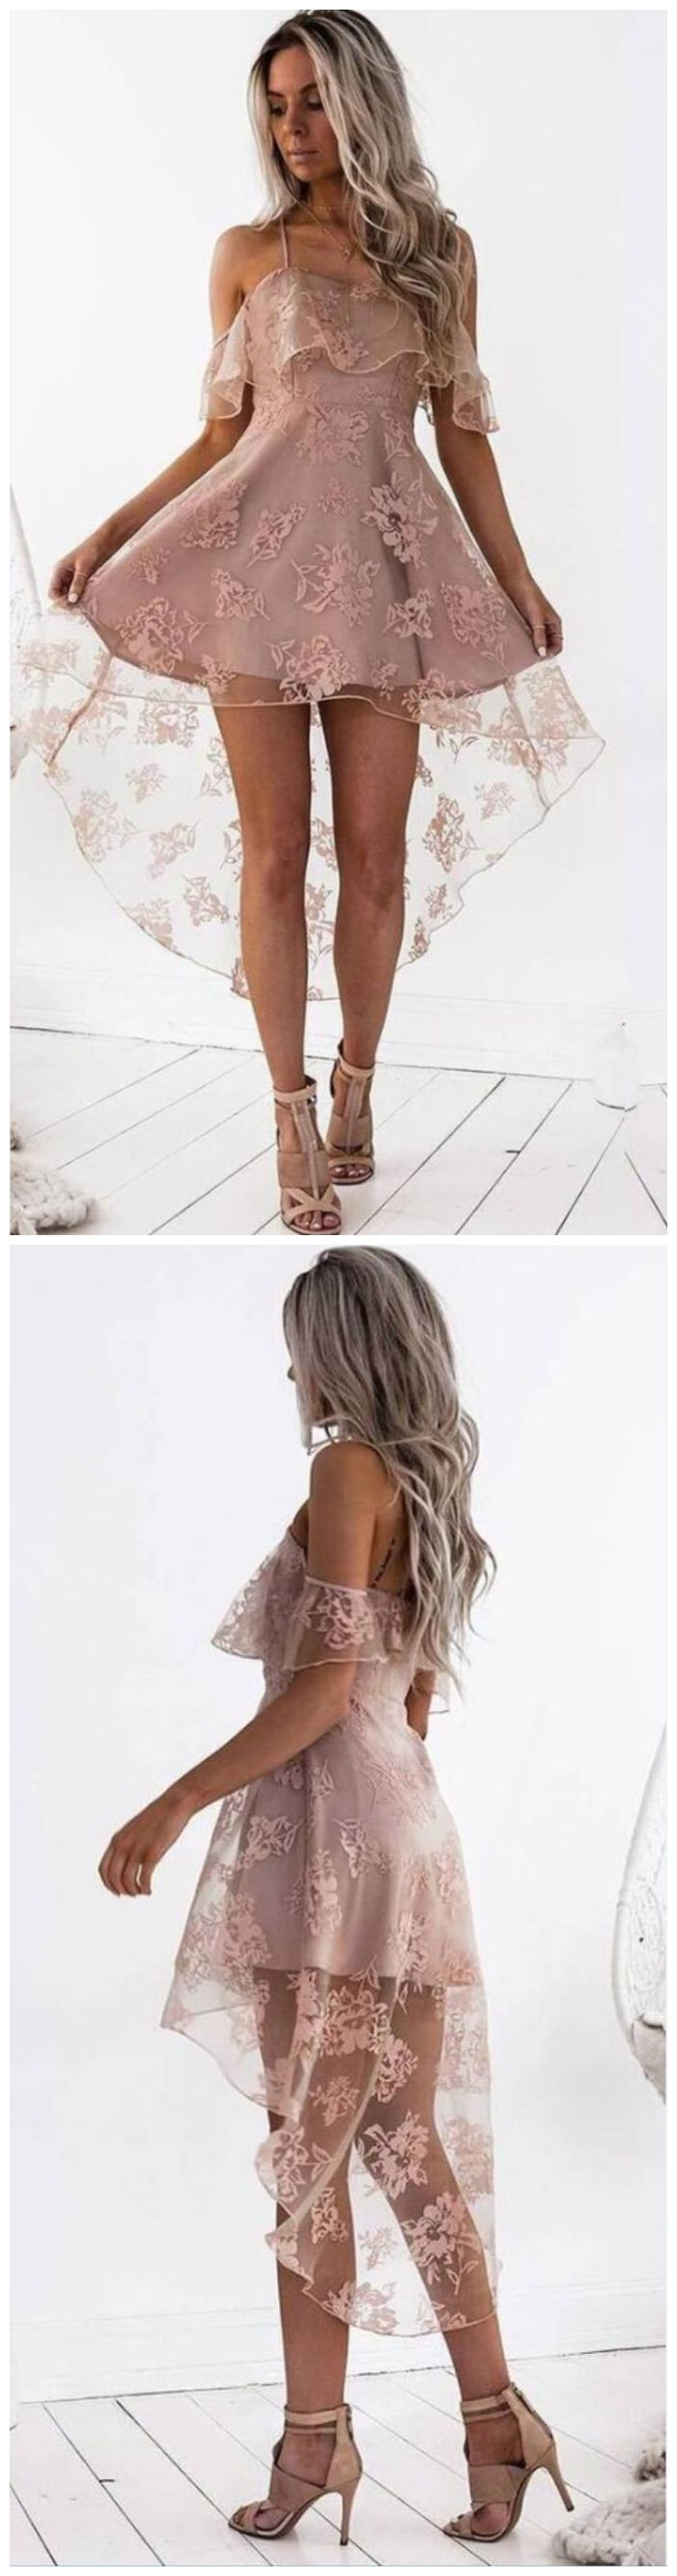 05ac0500e8d0b Off Shoulder High Low Dusty Pink Lace Homecoming Dresses 2018, CM440 ...